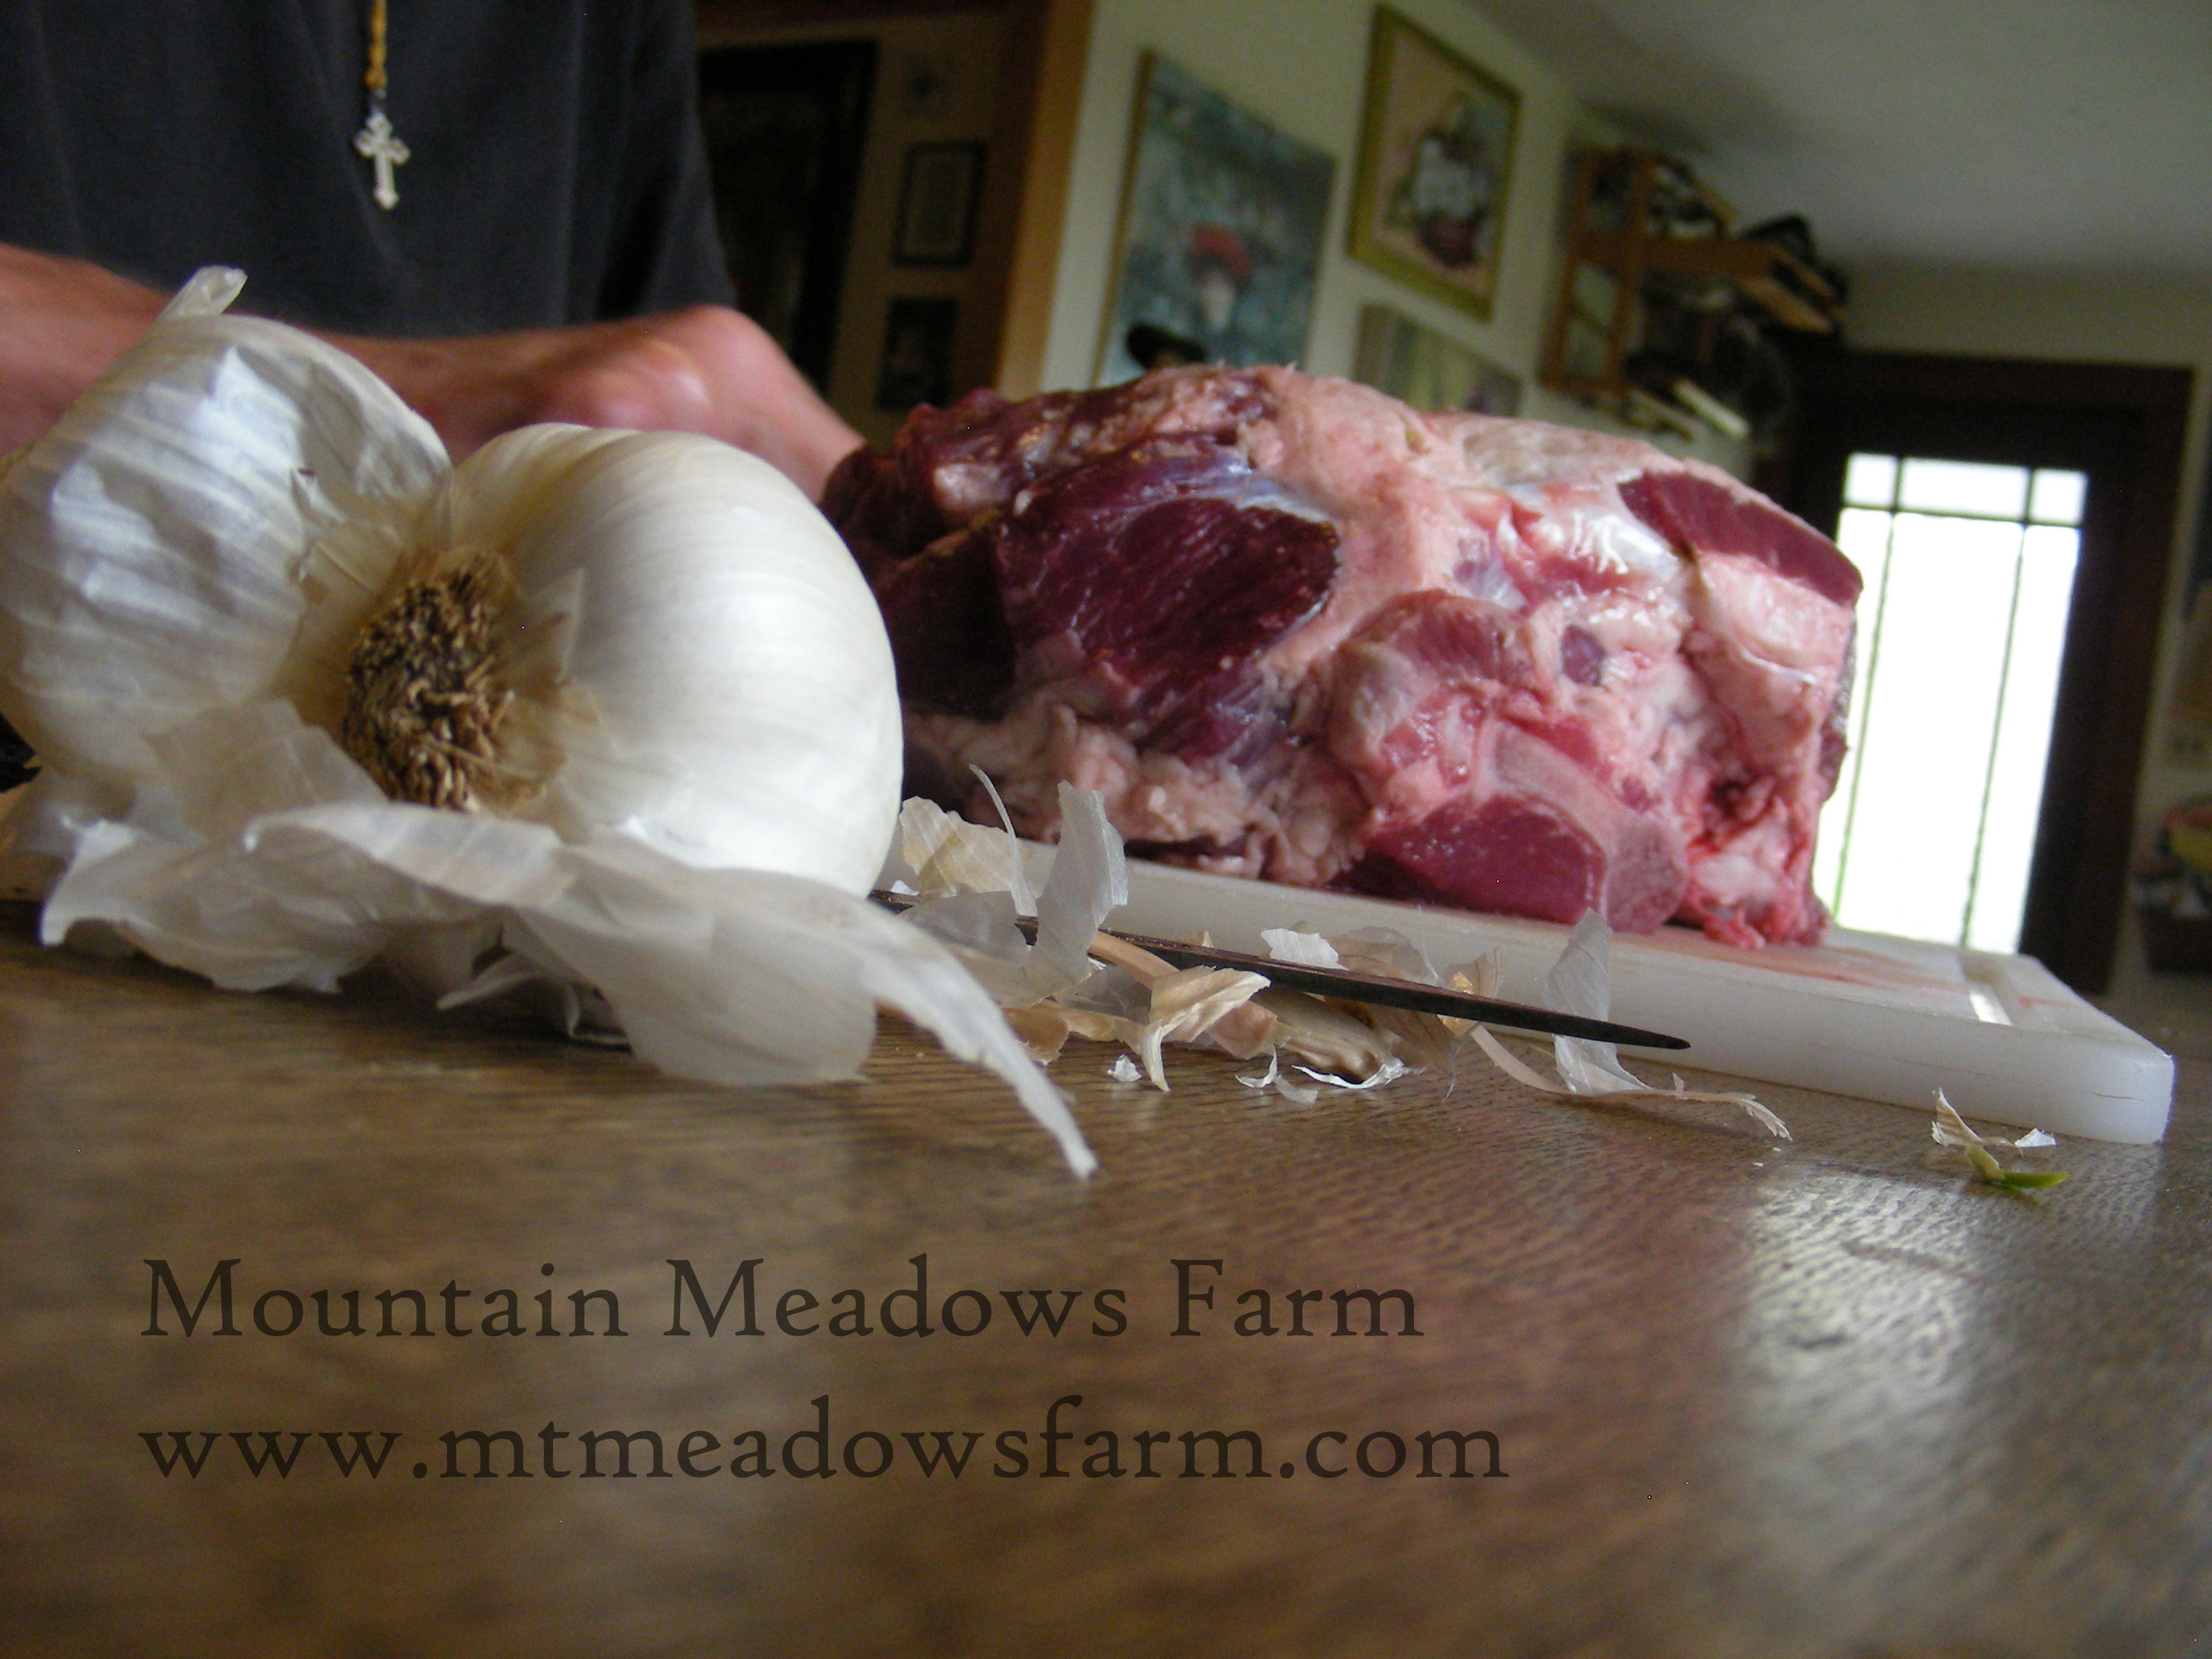 Prep the garlic before you start so that you don't cross-contaminate!